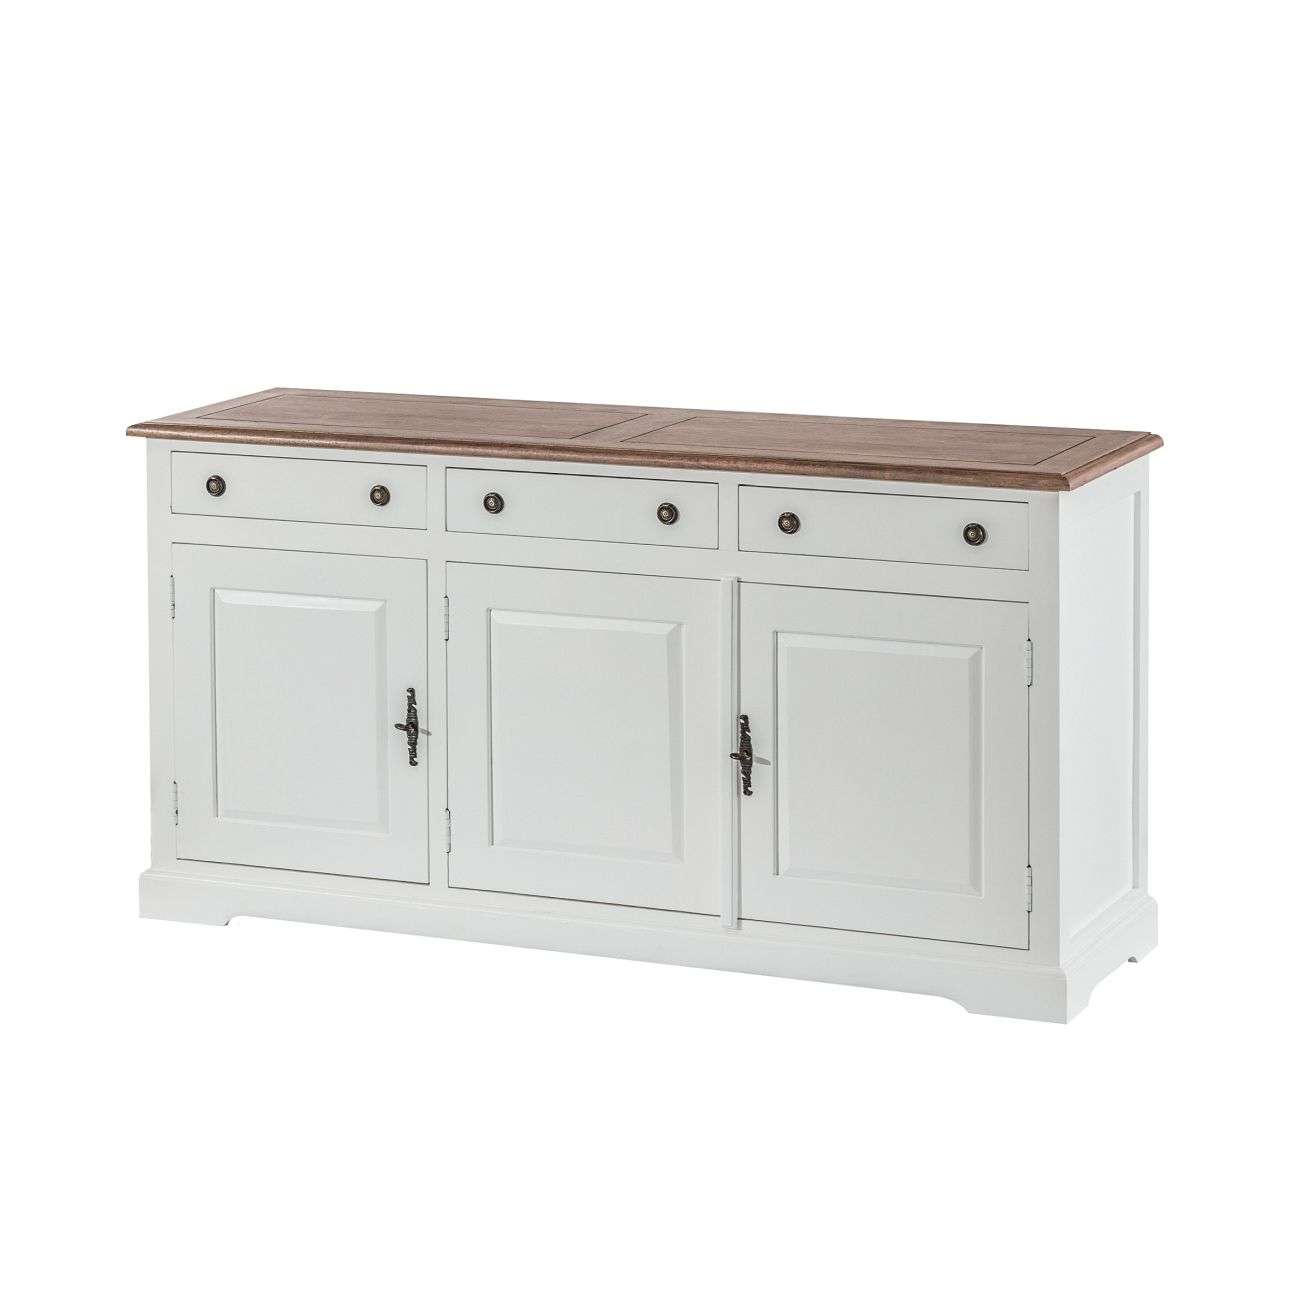 Dressoir Aston white & natural 155x45x80cm